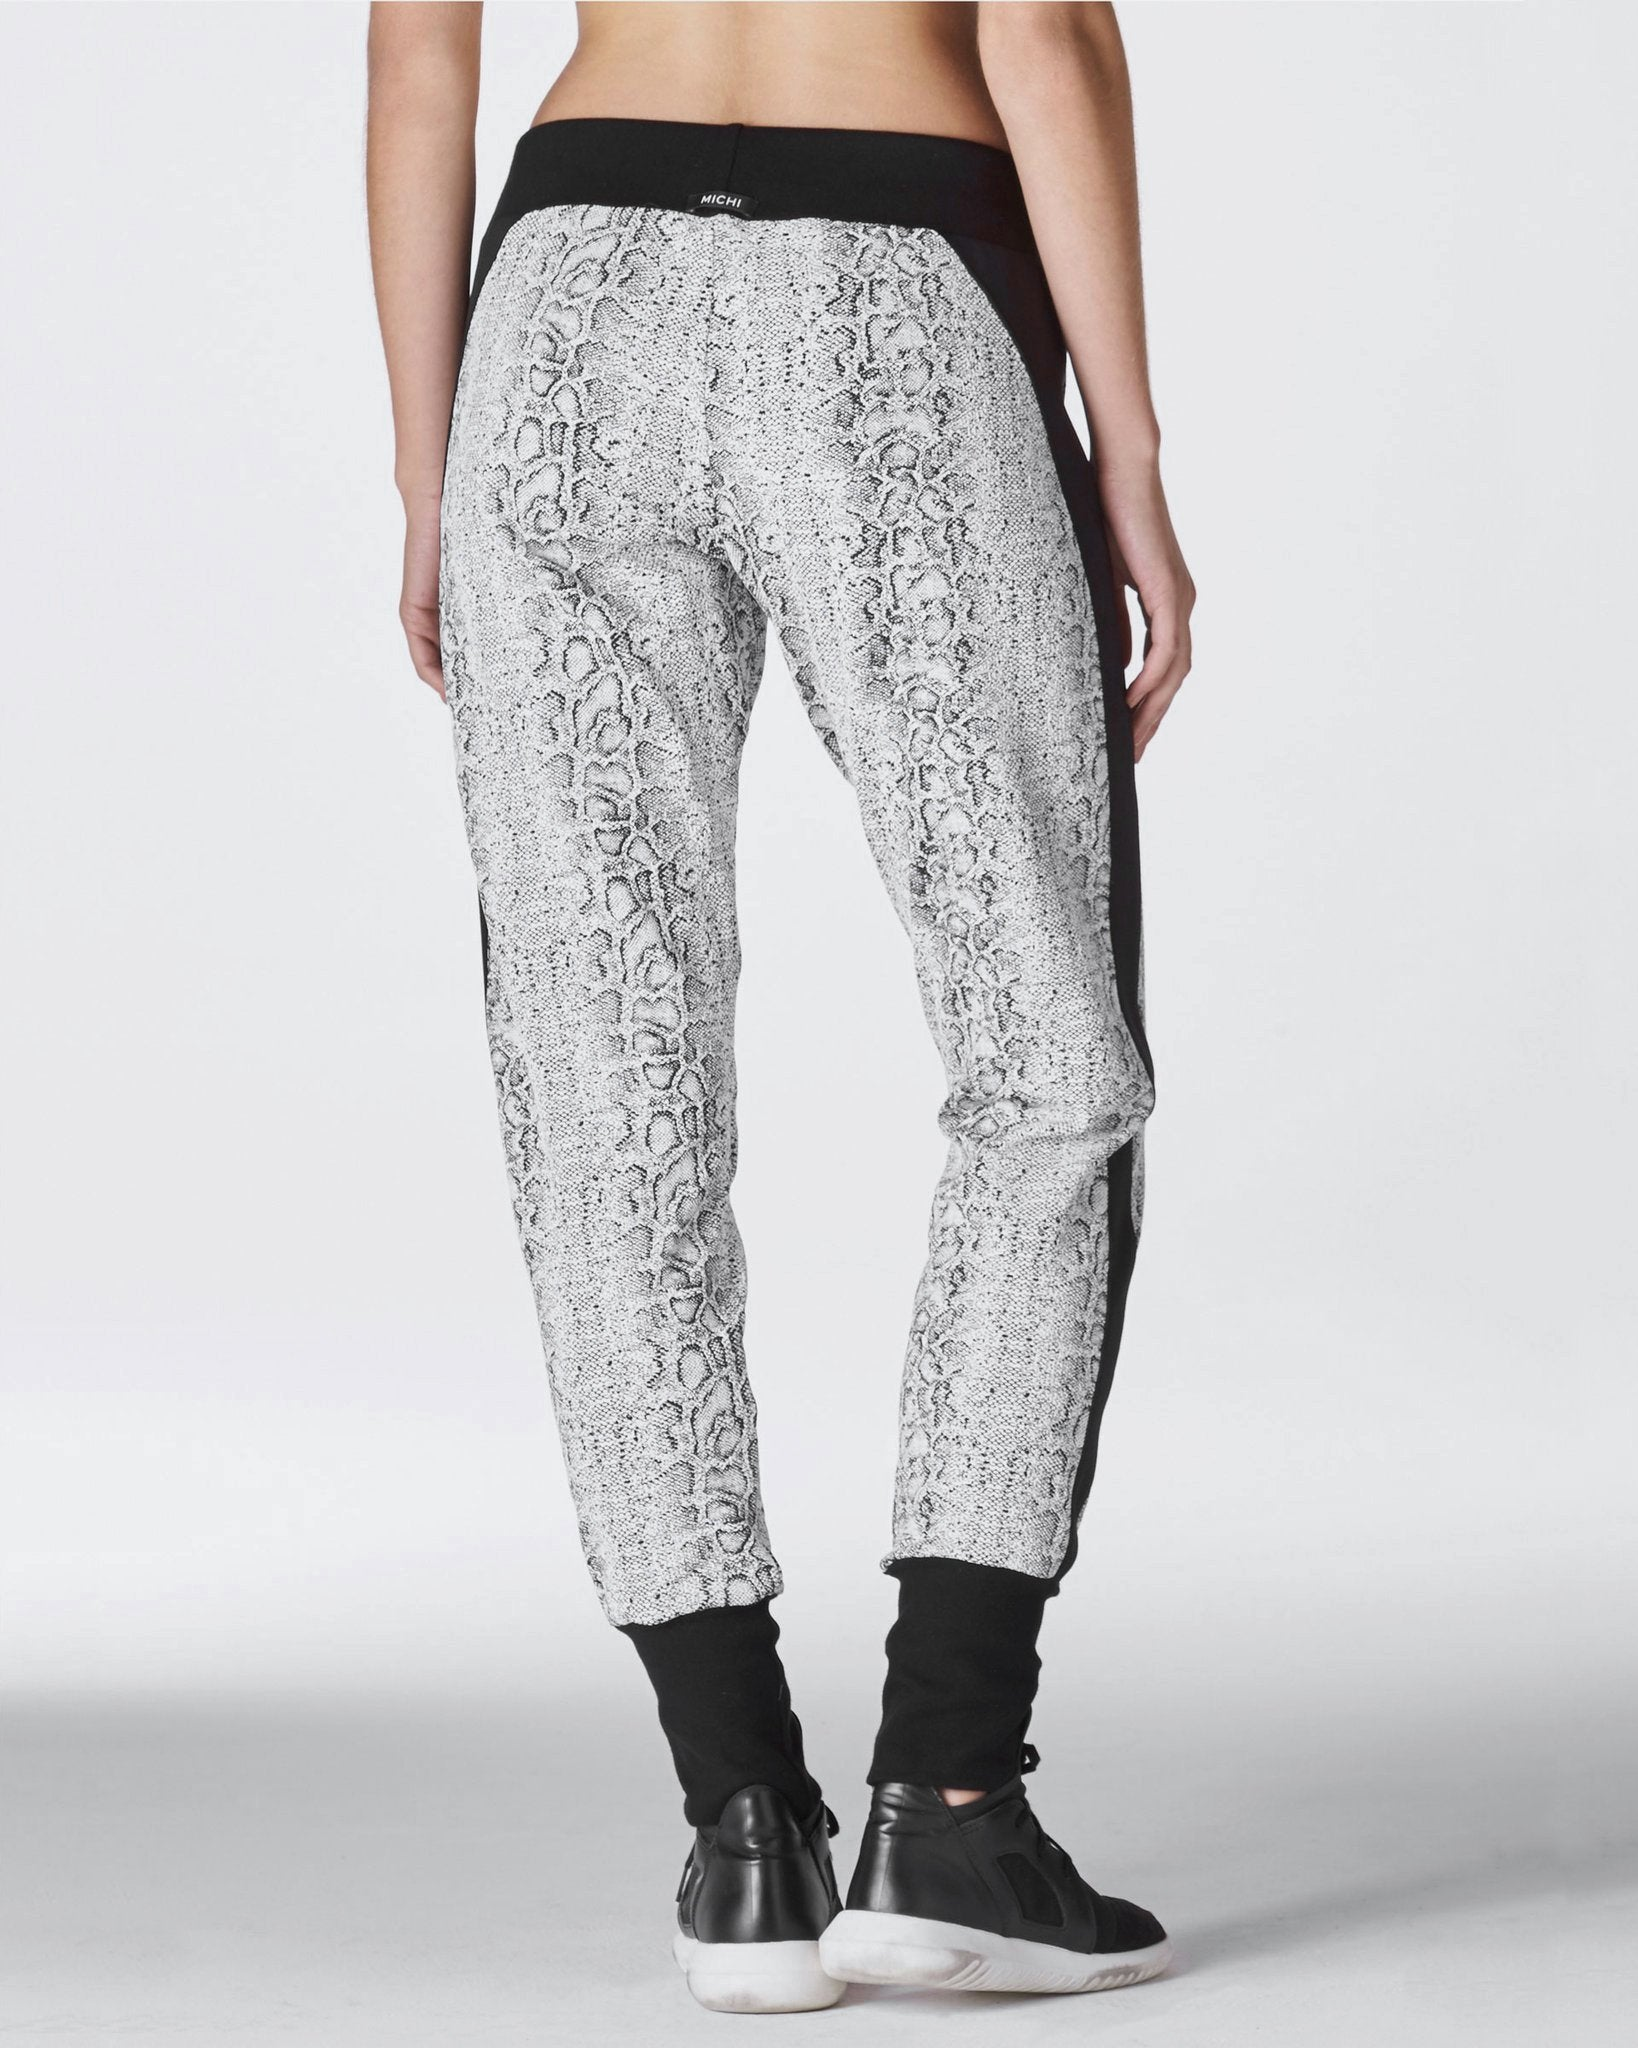 Serpente Sweatpant - Black White Python